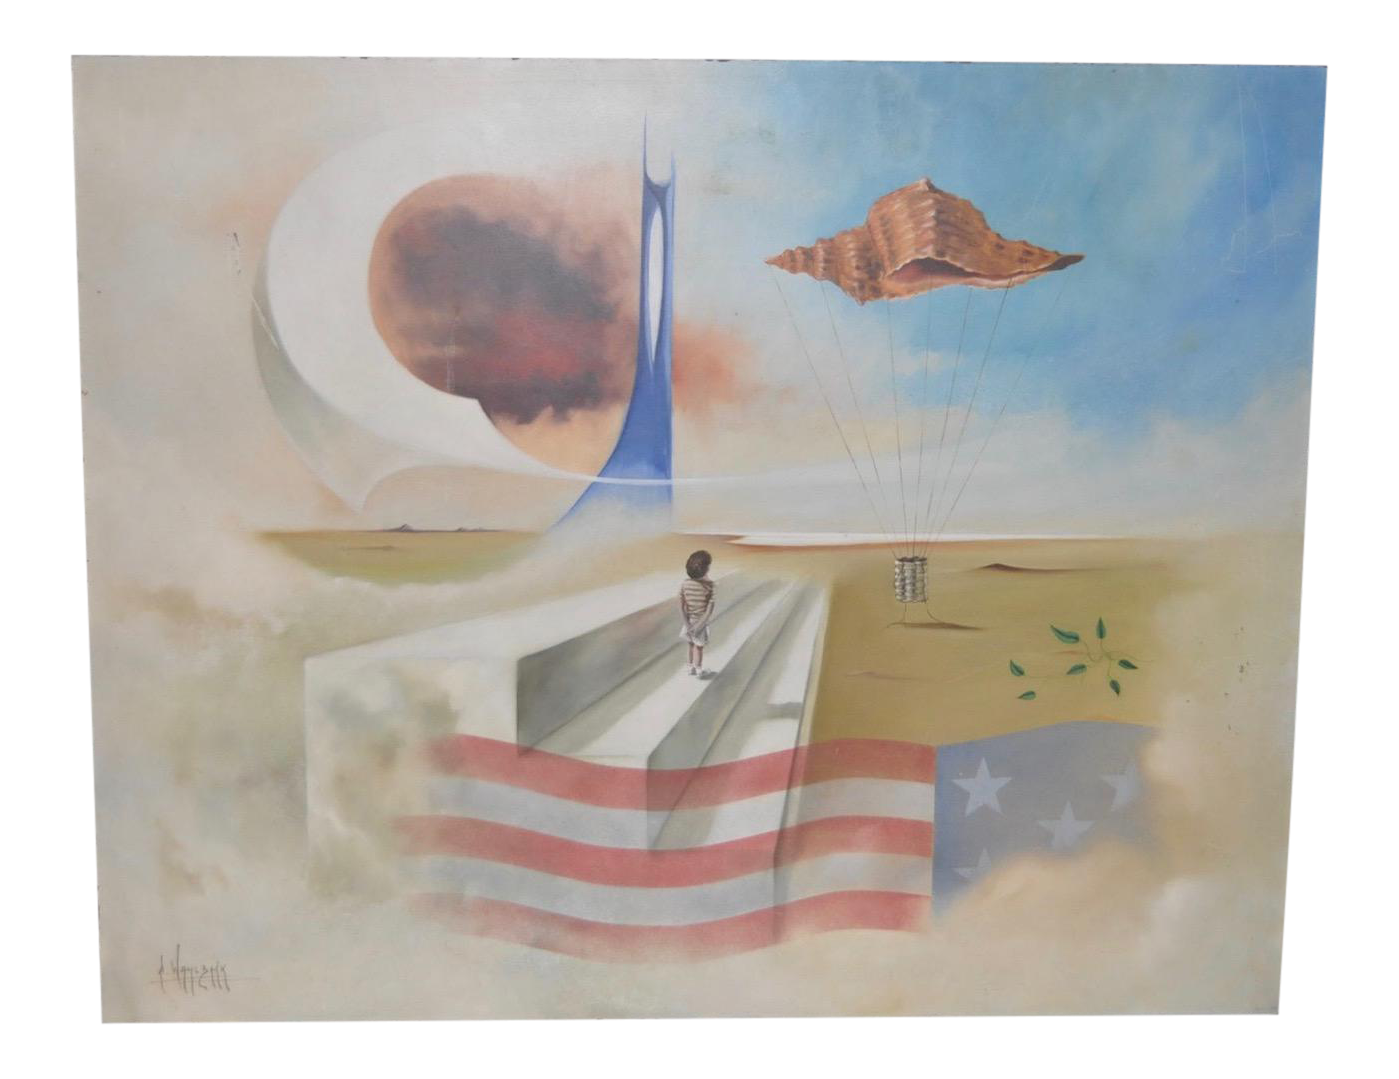 Carlo Wahlbeck Surreal Landscape Painting C 1970 Chairish